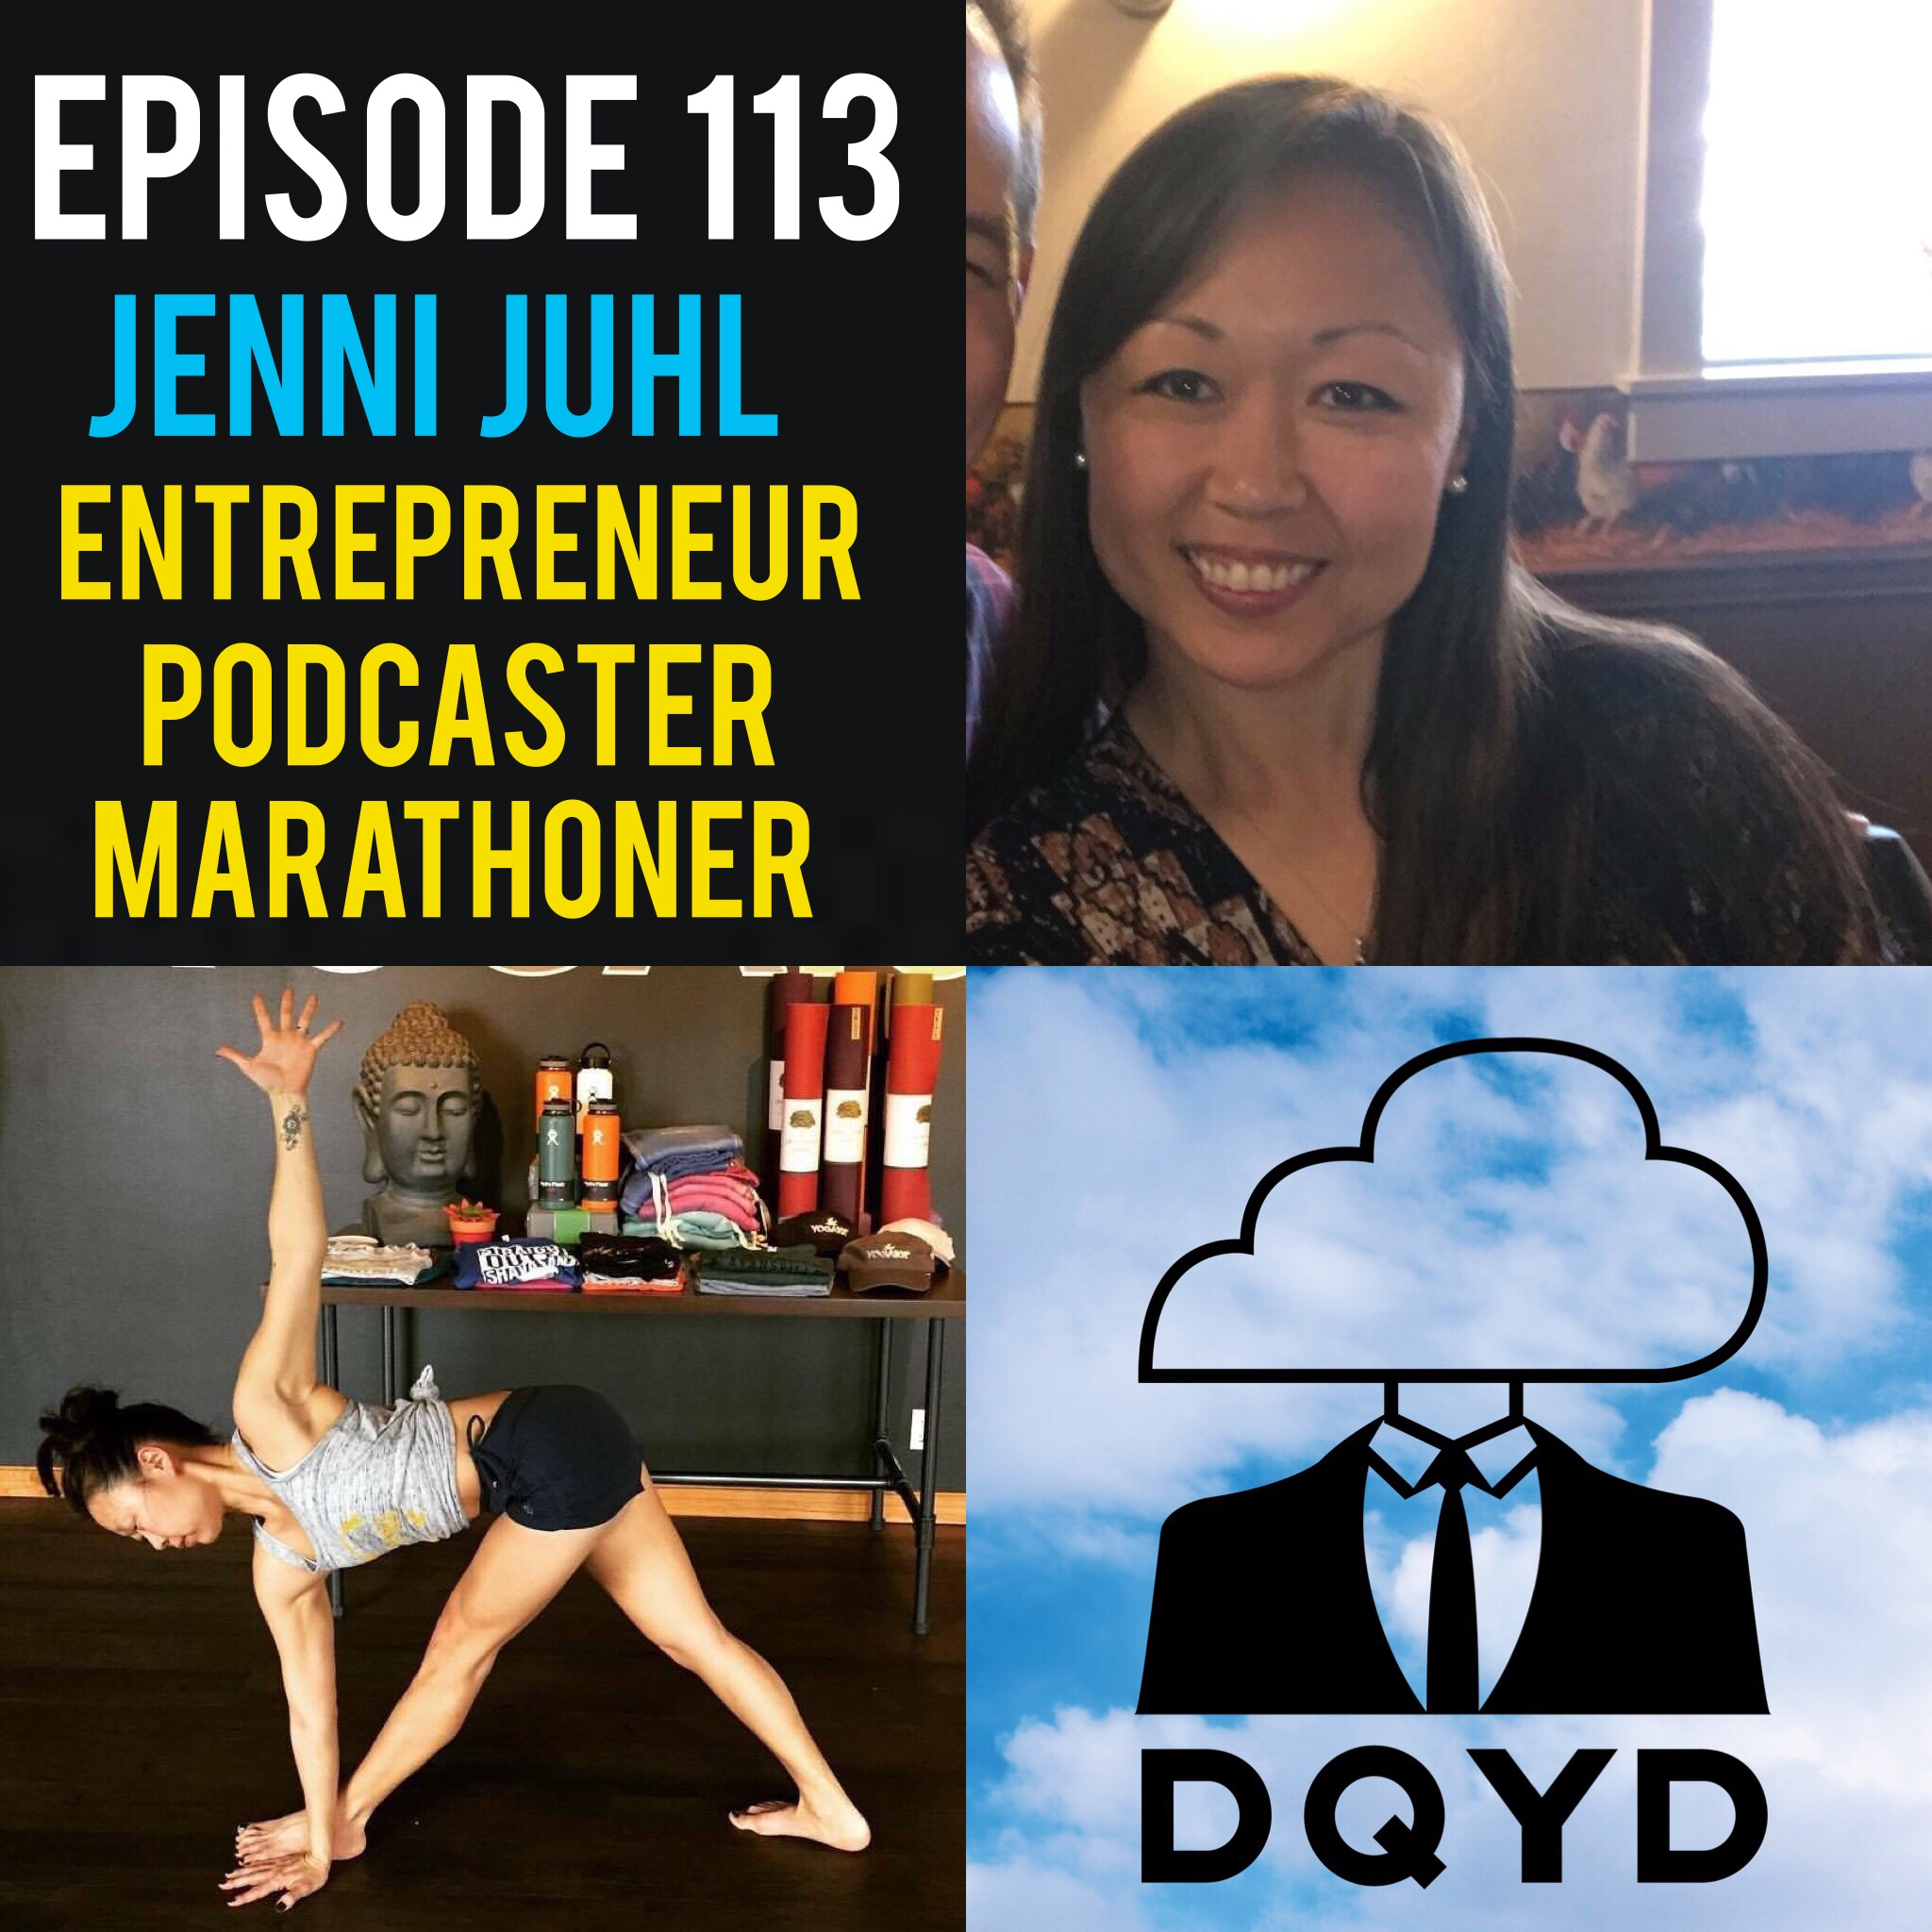 "Episode 113 with Entrepreneur, Podcaster, Marathoner and Yoga Instructor: Jenni Juhl! Perhaps one of the busiest people we have ever had on, Jenni explains how she continues to find the inspiration and drive to do more. Owner of Yoga 101 and her own financial advisory firm she still finds time for running marathons and to record her very own podcast Corageous Conversations.  Song of the week is ""Living Like the Rest"" by Thunder/Dreamer! https://thunderdreamer.bandcamp.com/"